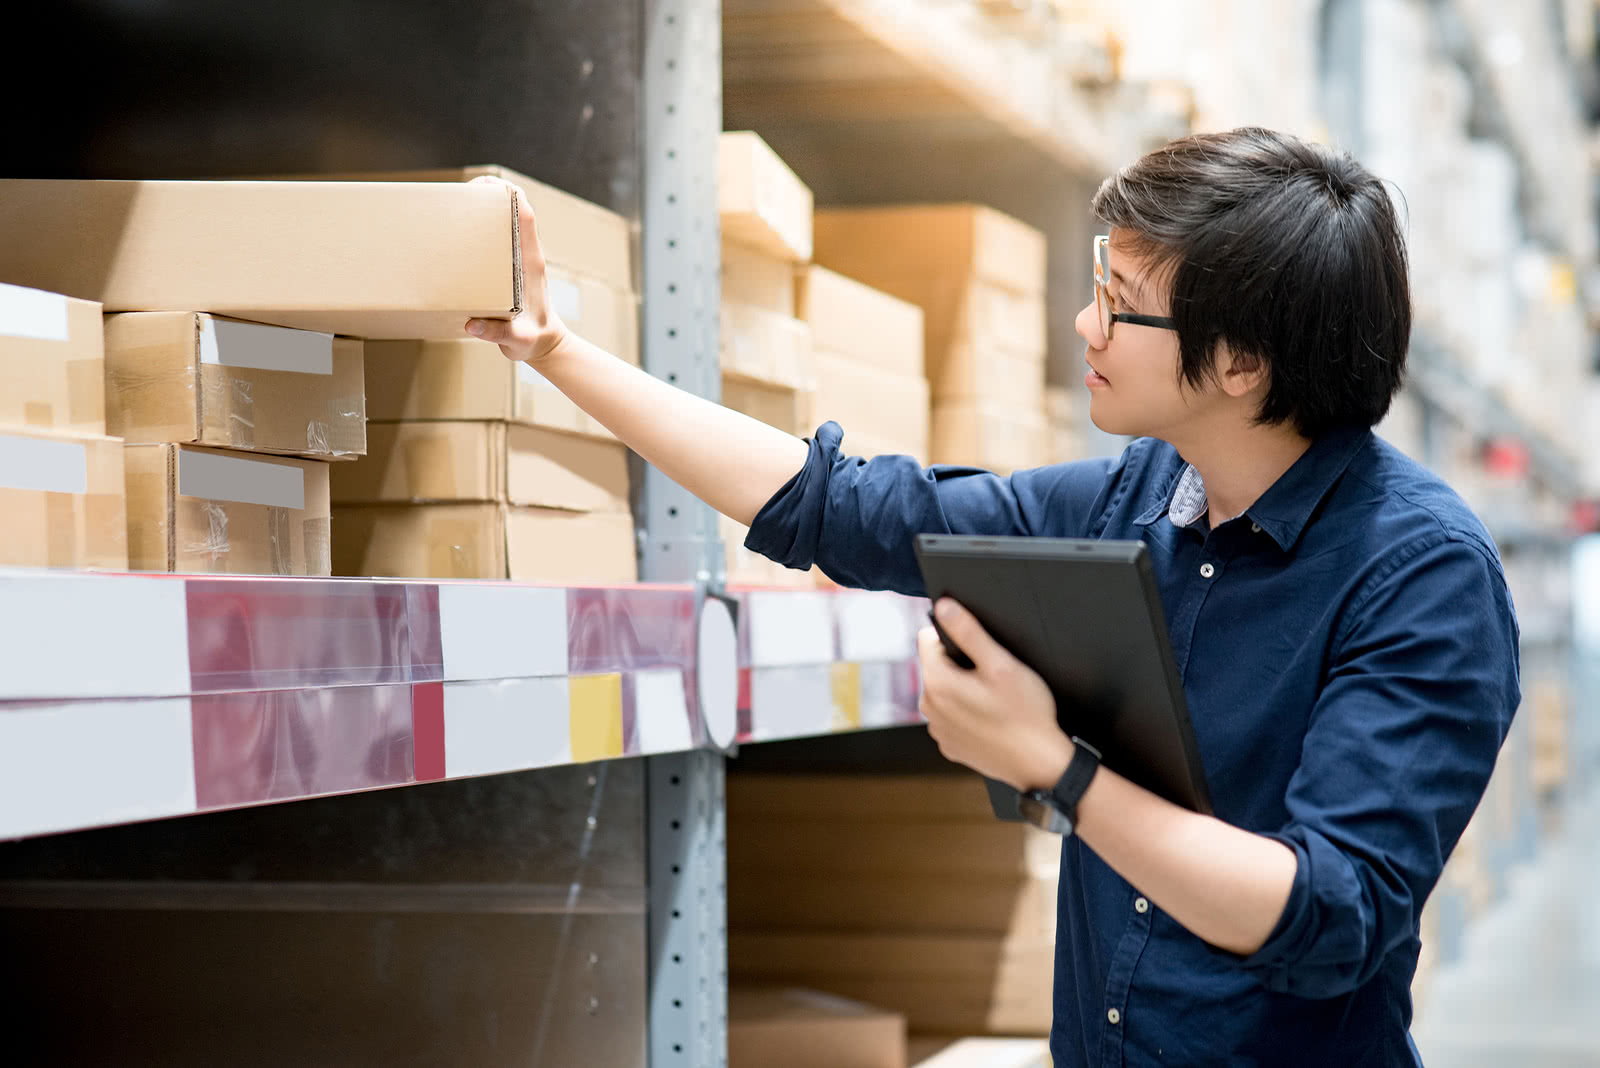 A business owner tracks inventory, a key part of inventory management for small business